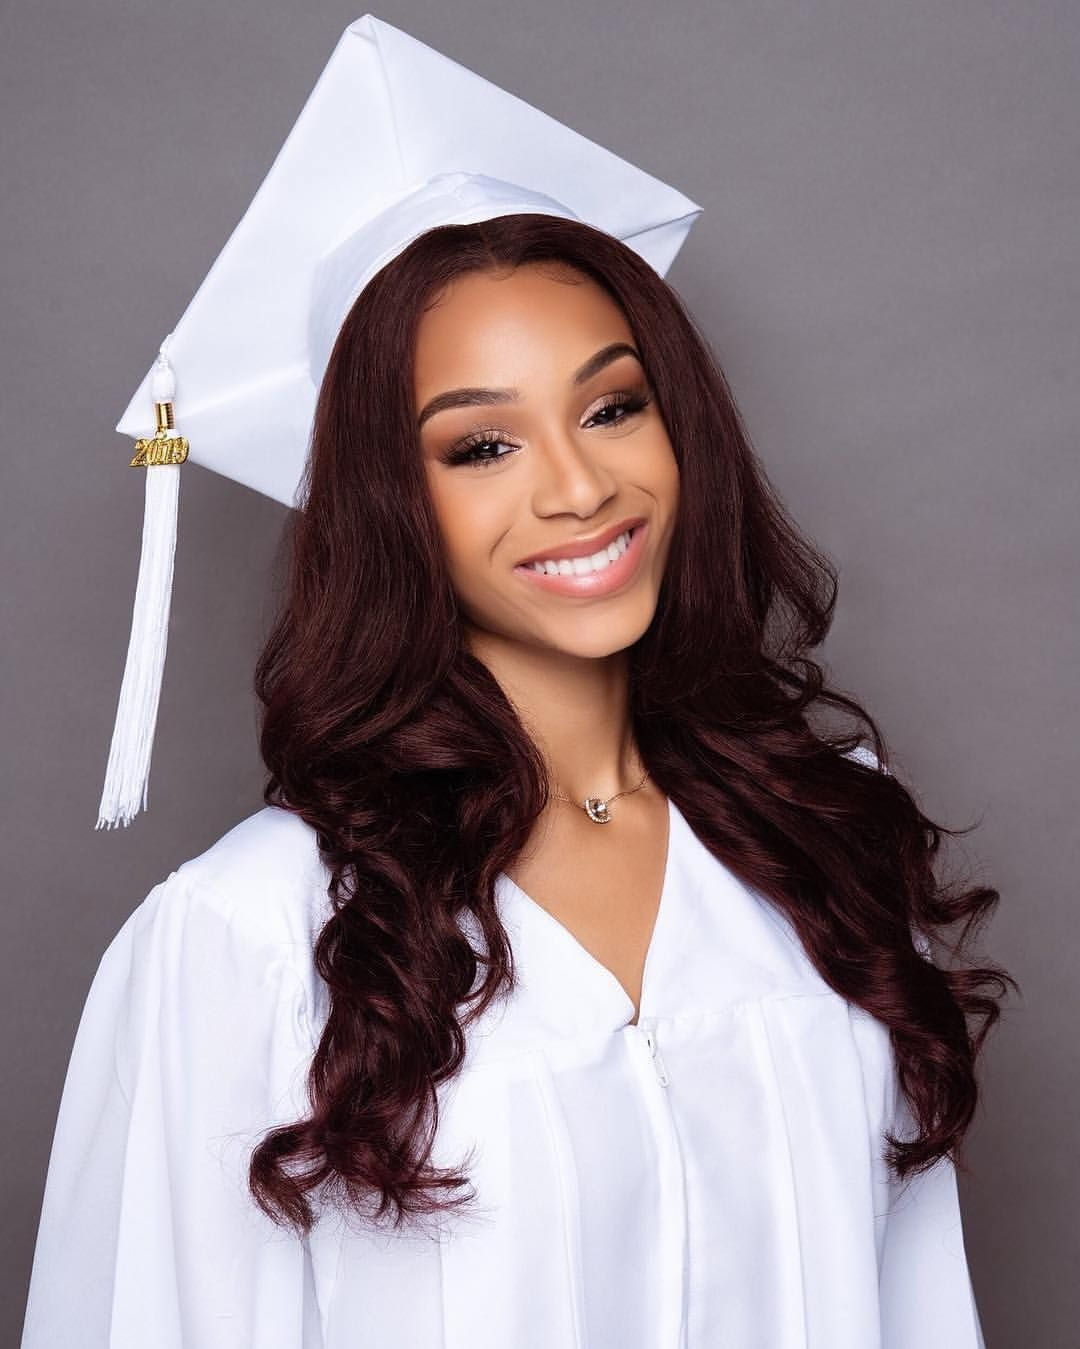 Hair Color Hair Color For Black Hair Graduation Hairstyles Senior Pictures Hairstyles